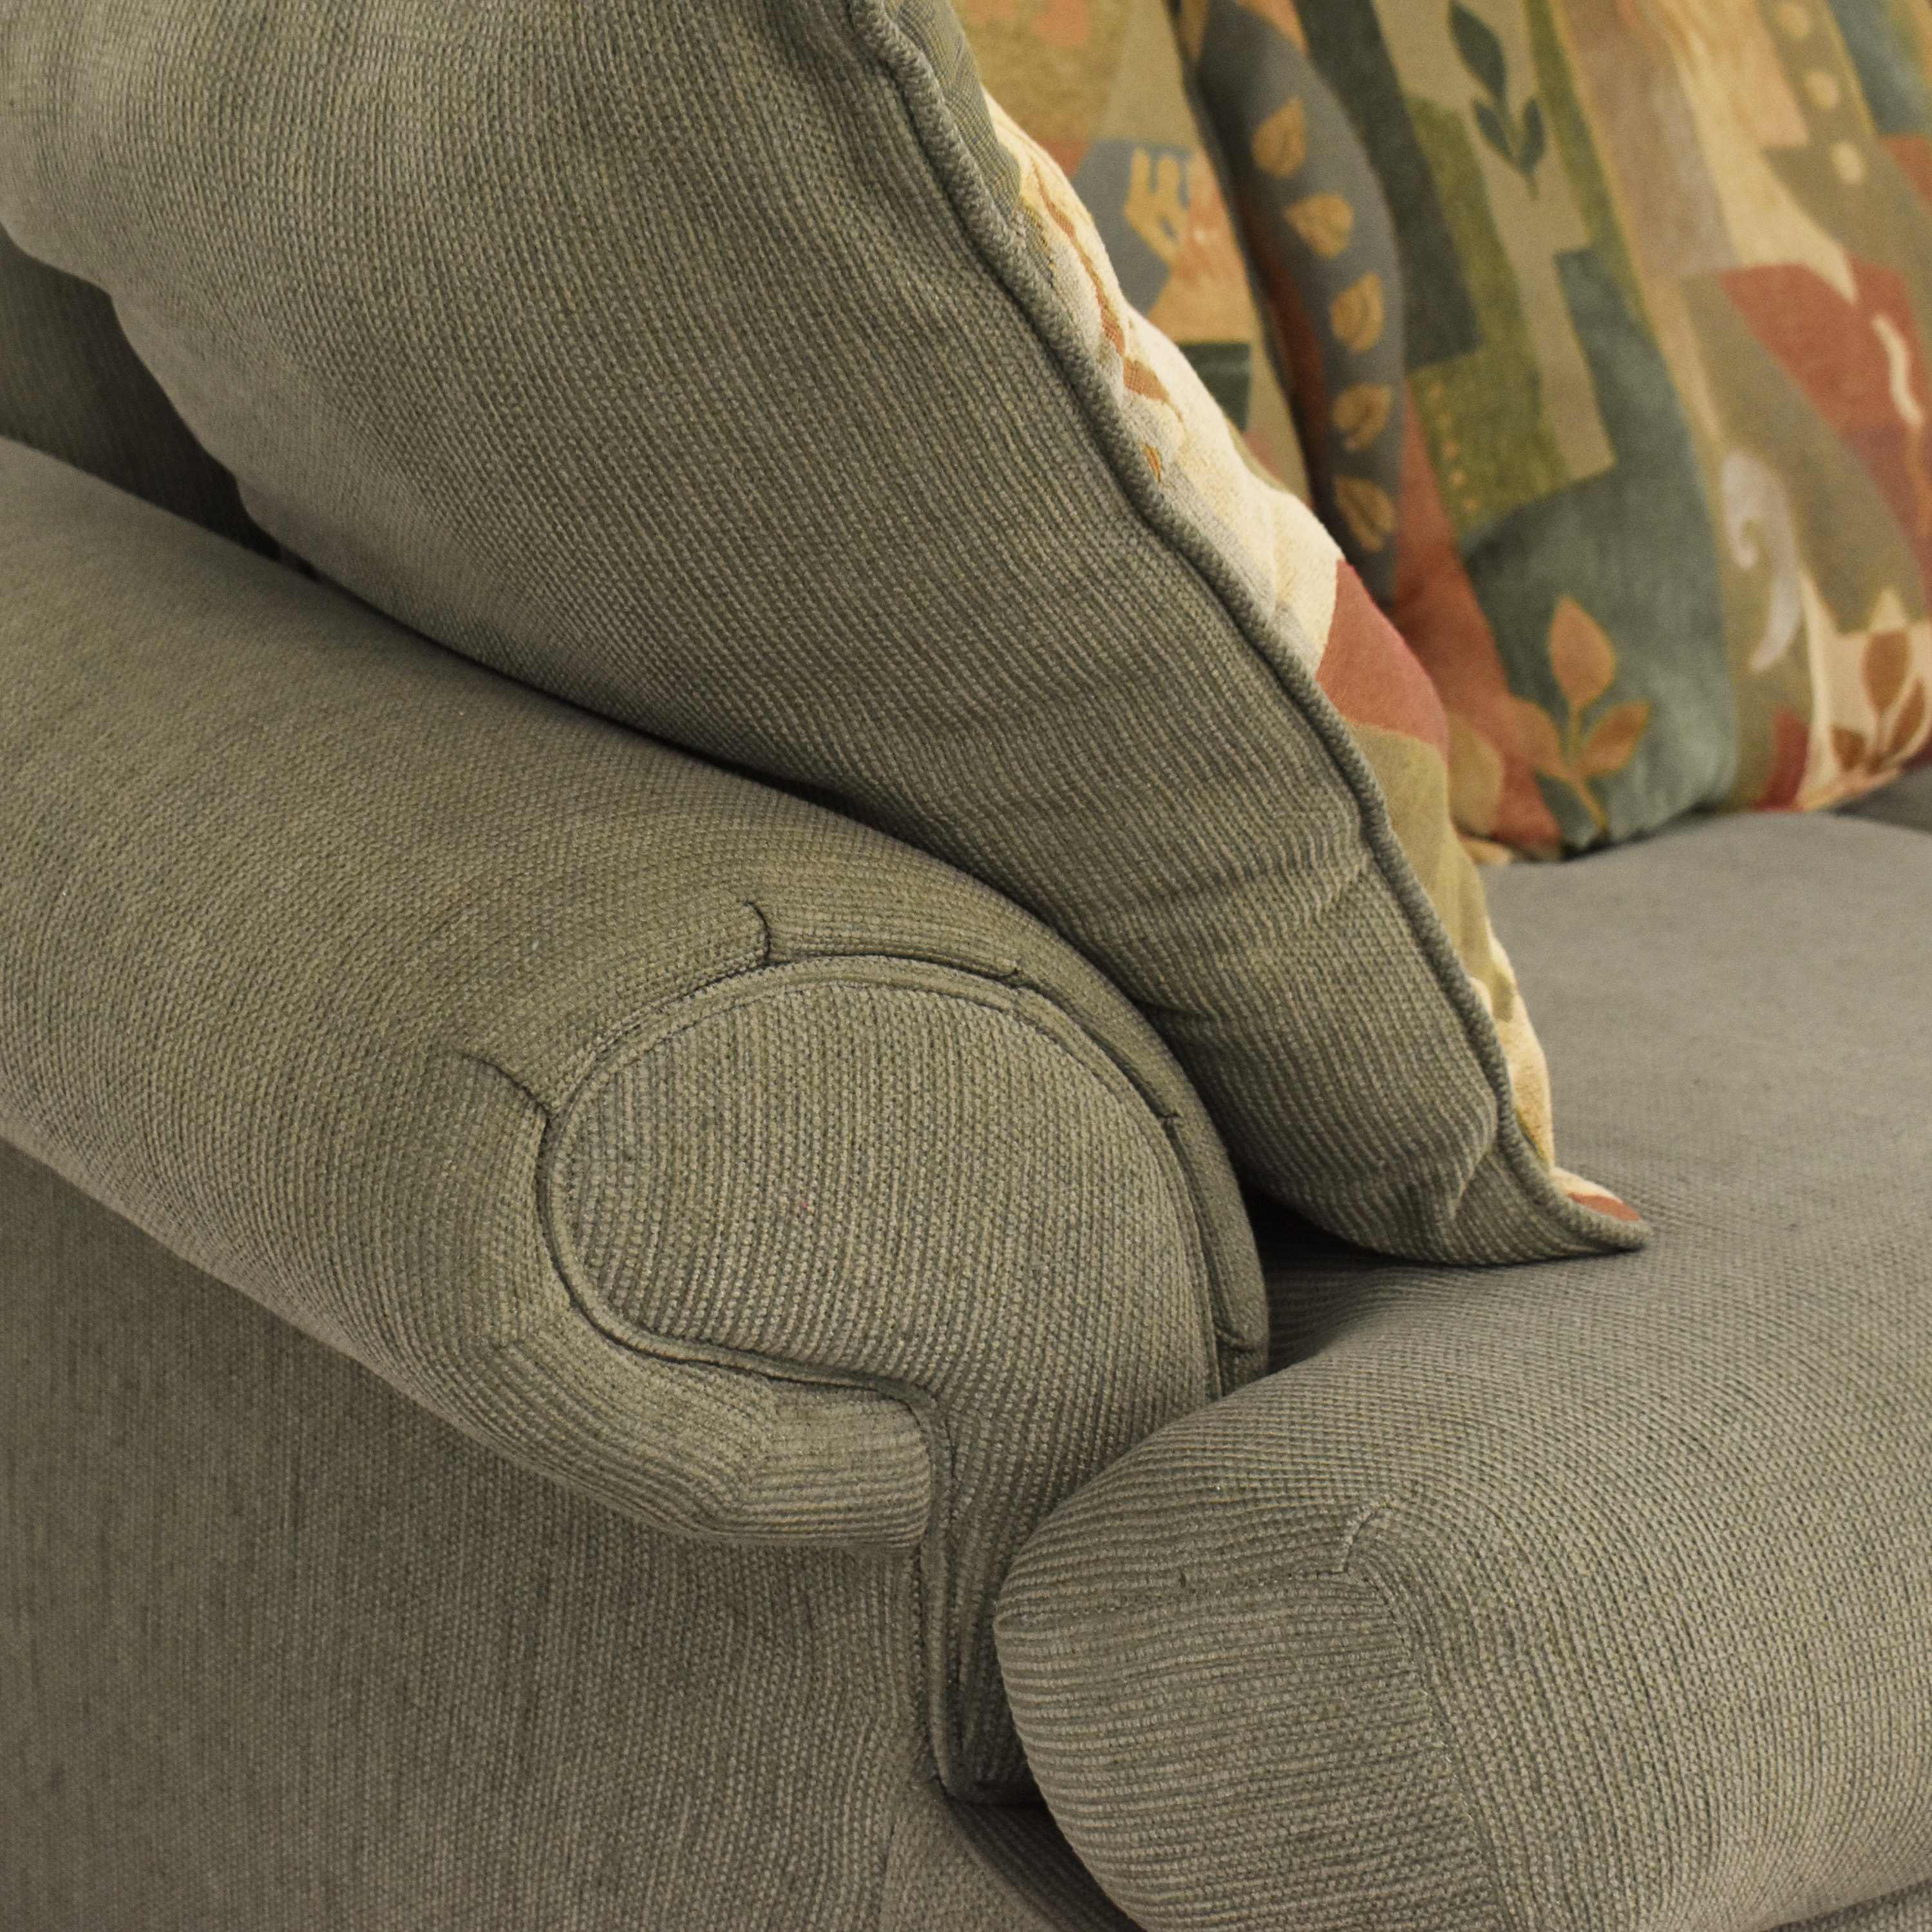 Two Cushion Sofa with Pillows dimensions